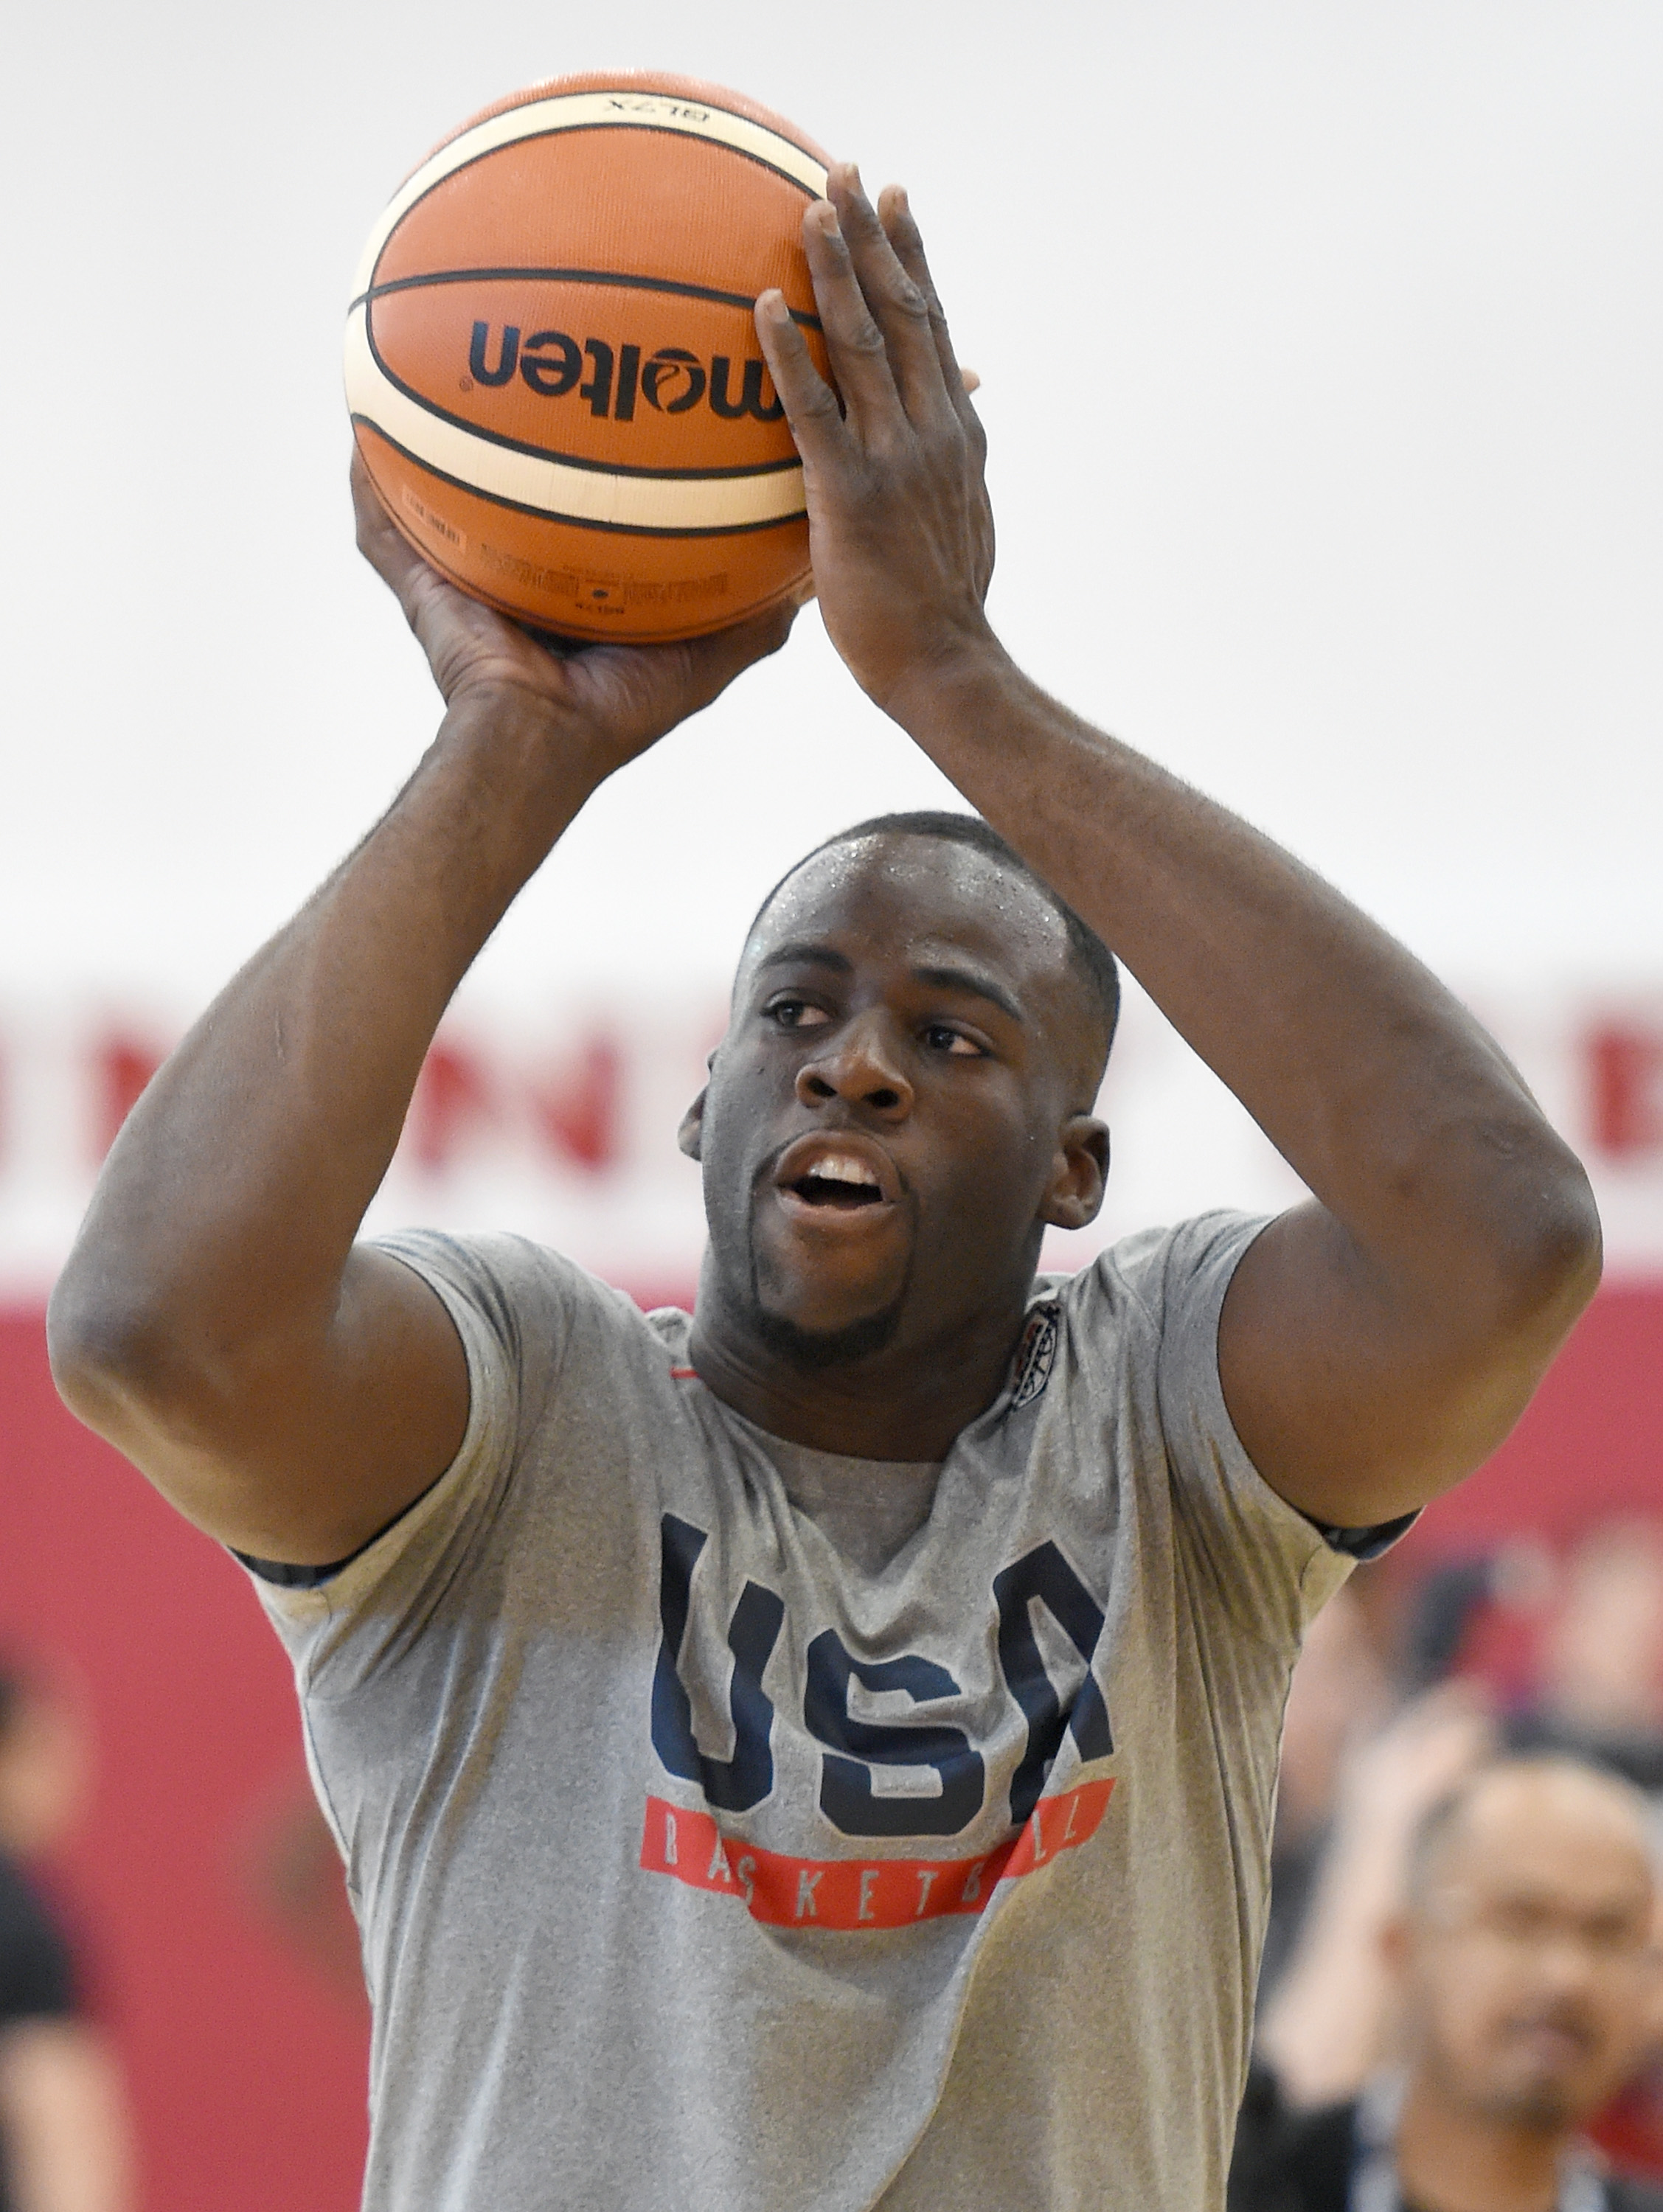 LAS VEGAS, NV - JULY 21:  Draymond Green #14 of the 2016 USA Basketball Men's National Team shoots during a practice session at the Mendenhall Center on July 21, 2016 in Las Vegas, Nevada.  (Photo by Ethan Miller/Getty Images)